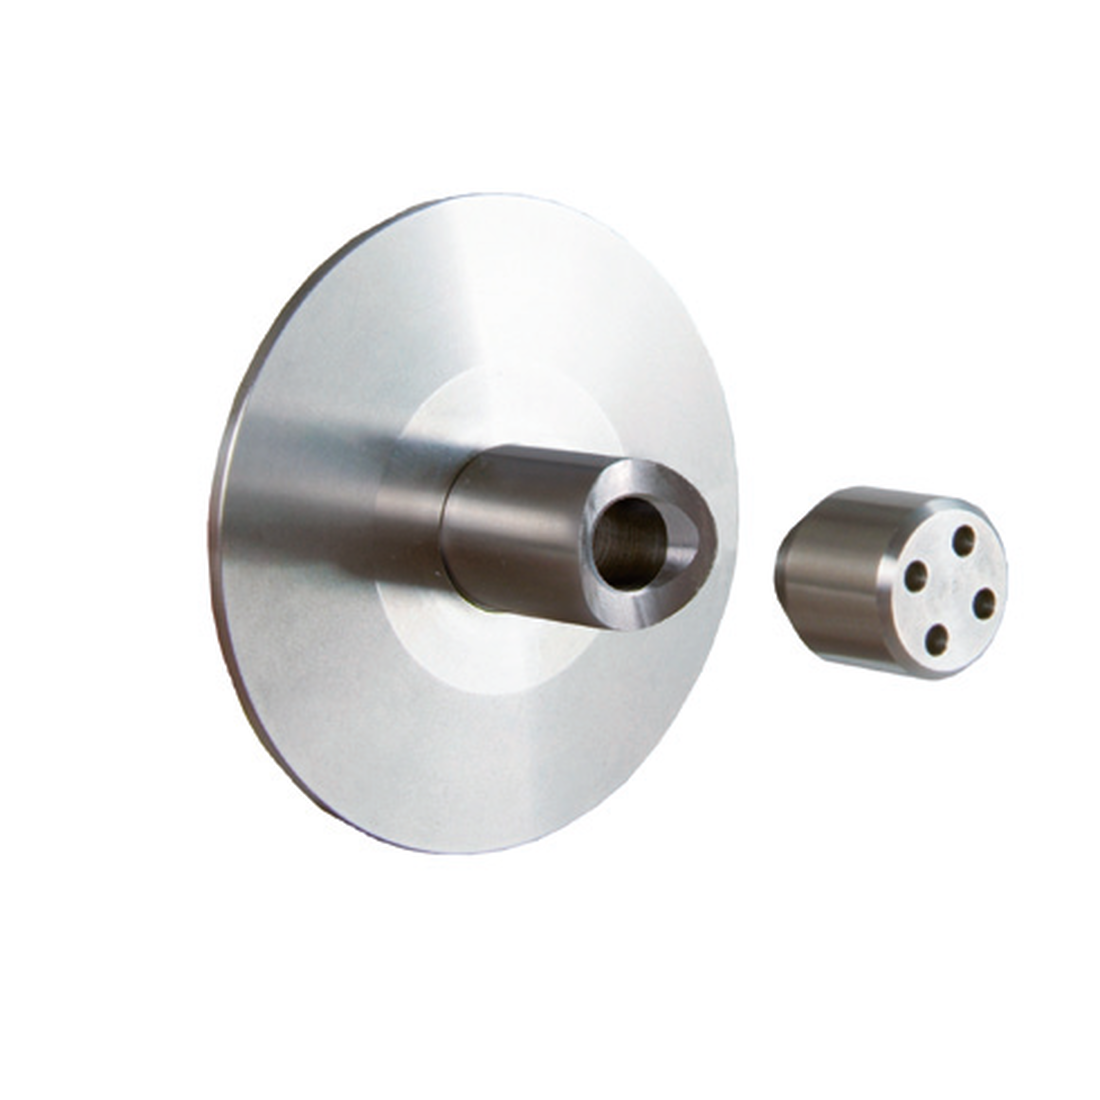 WALL MOUNT (M8)